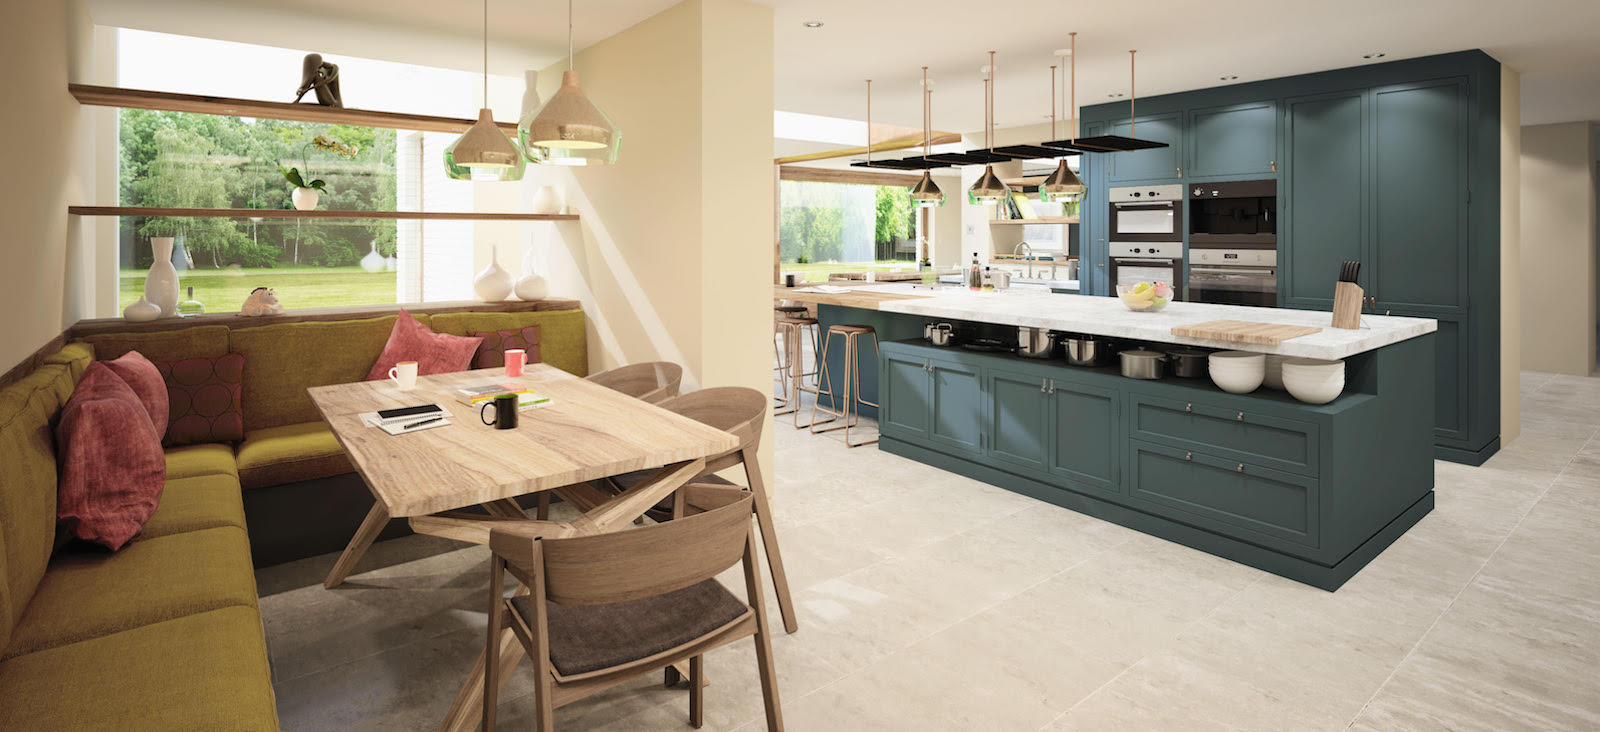 Ocean Bespoke Ocean Design Kitchen Design Bespoke Kitchens Liverpool Kitchen Bedroom